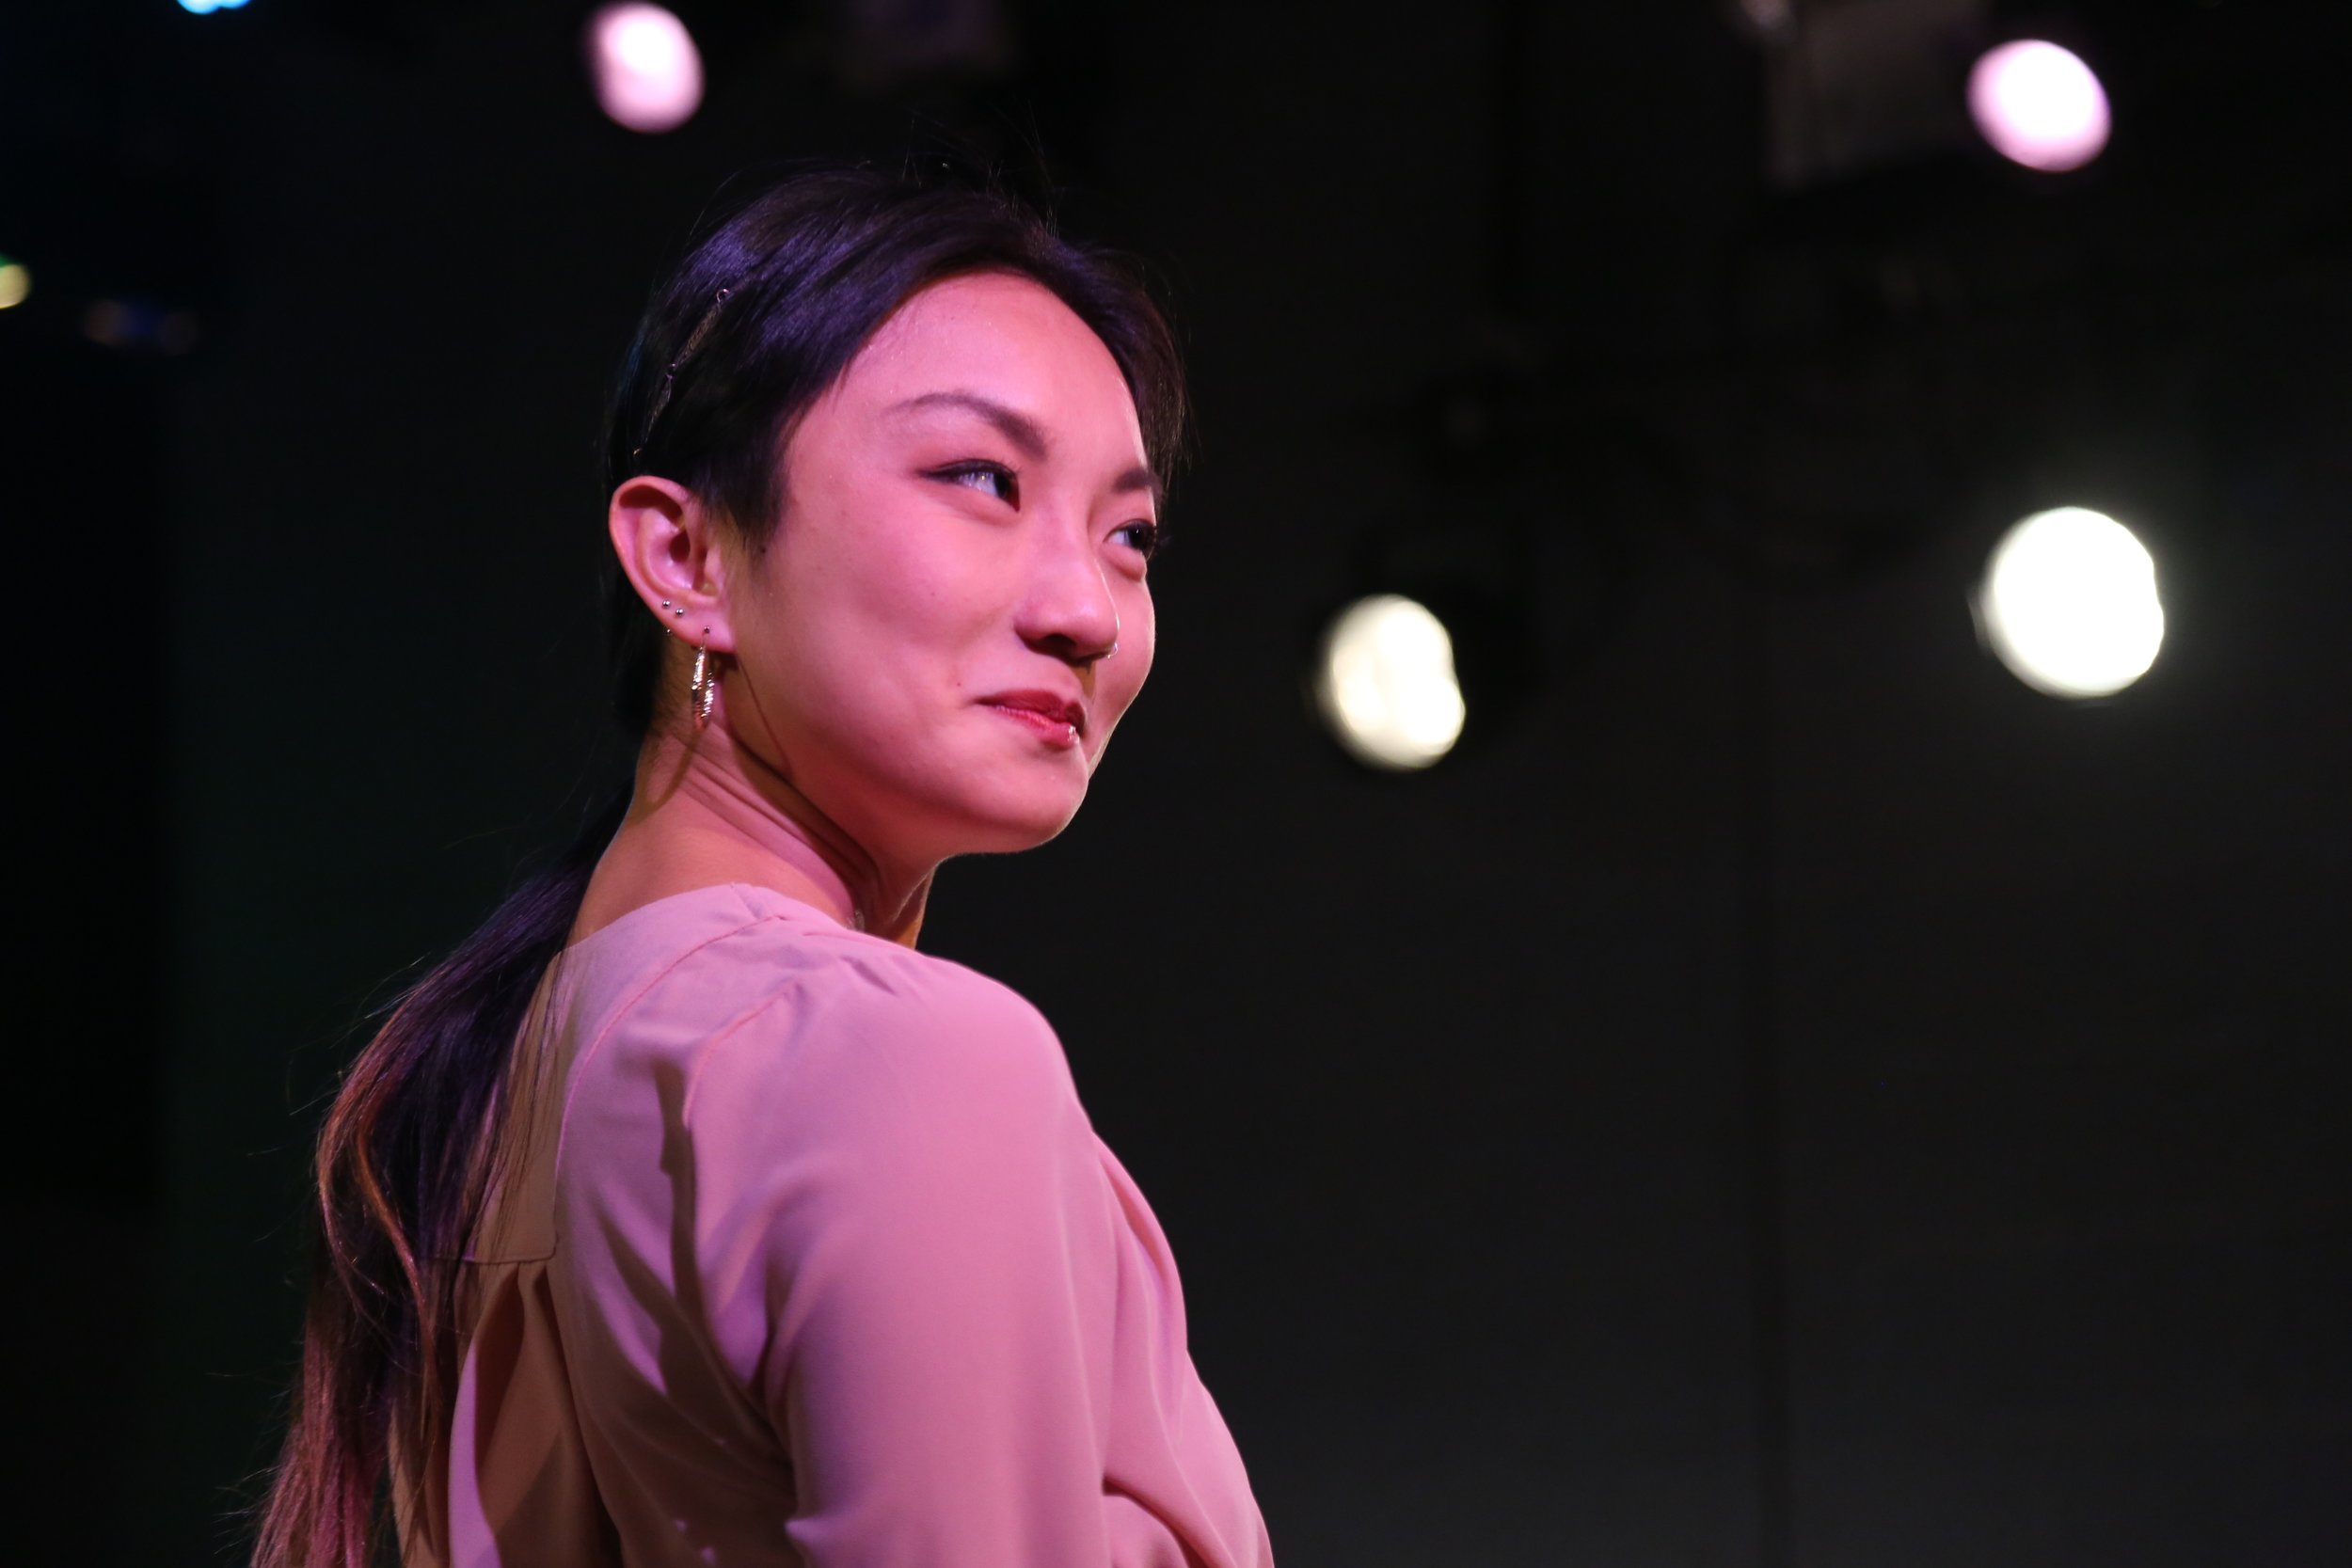 Hedda Gabler by Henrik Ibsen - Women & Patriarchy Readings